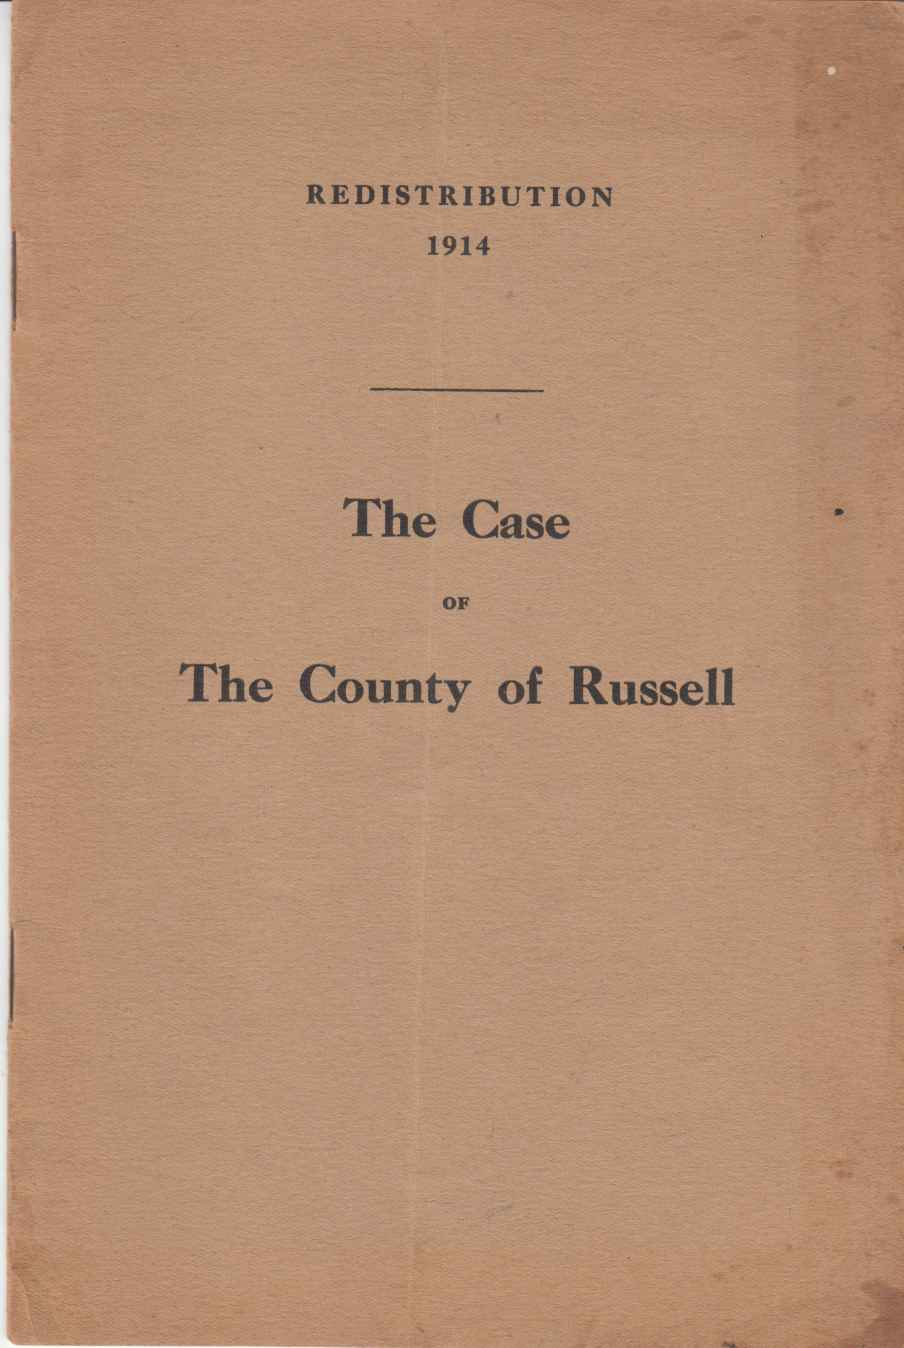 Image for The Case of the Electors of the County of Russell Against the Proposal to Deprive Them of Parliamentary Representation by Wiping Their County off the Electoral Map of Ontario